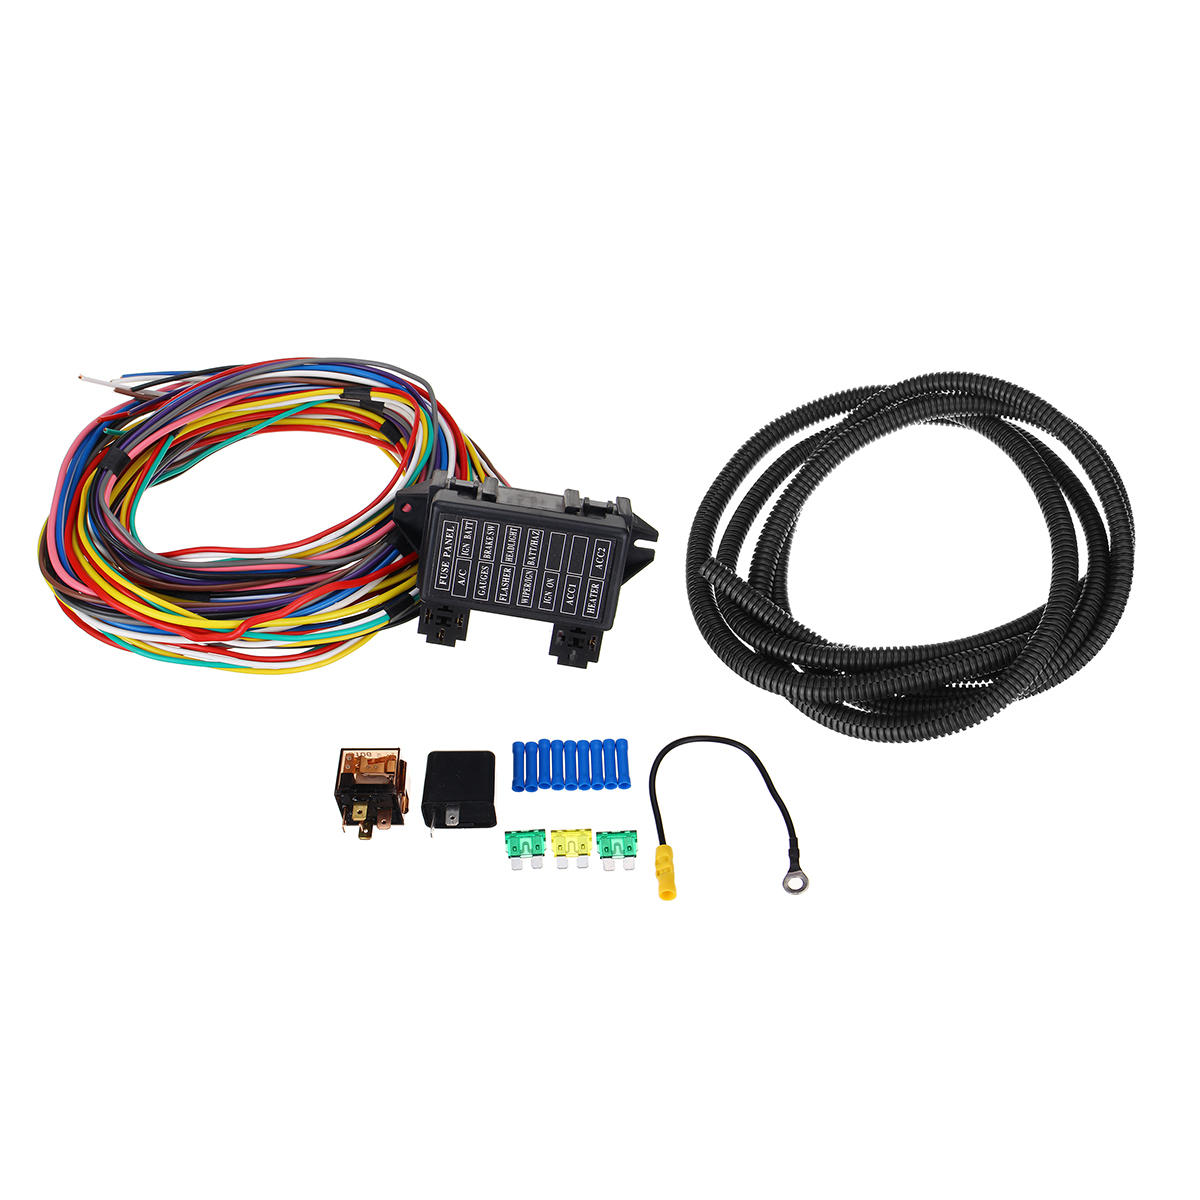 [DIAGRAM_5UK]  14 Circuit Universal Wiring Harness Bumper Wire Kit 12V Durability Car Hot  Rod S - US$56.89 | Hot Rod Wiring Harness |  | Banggood